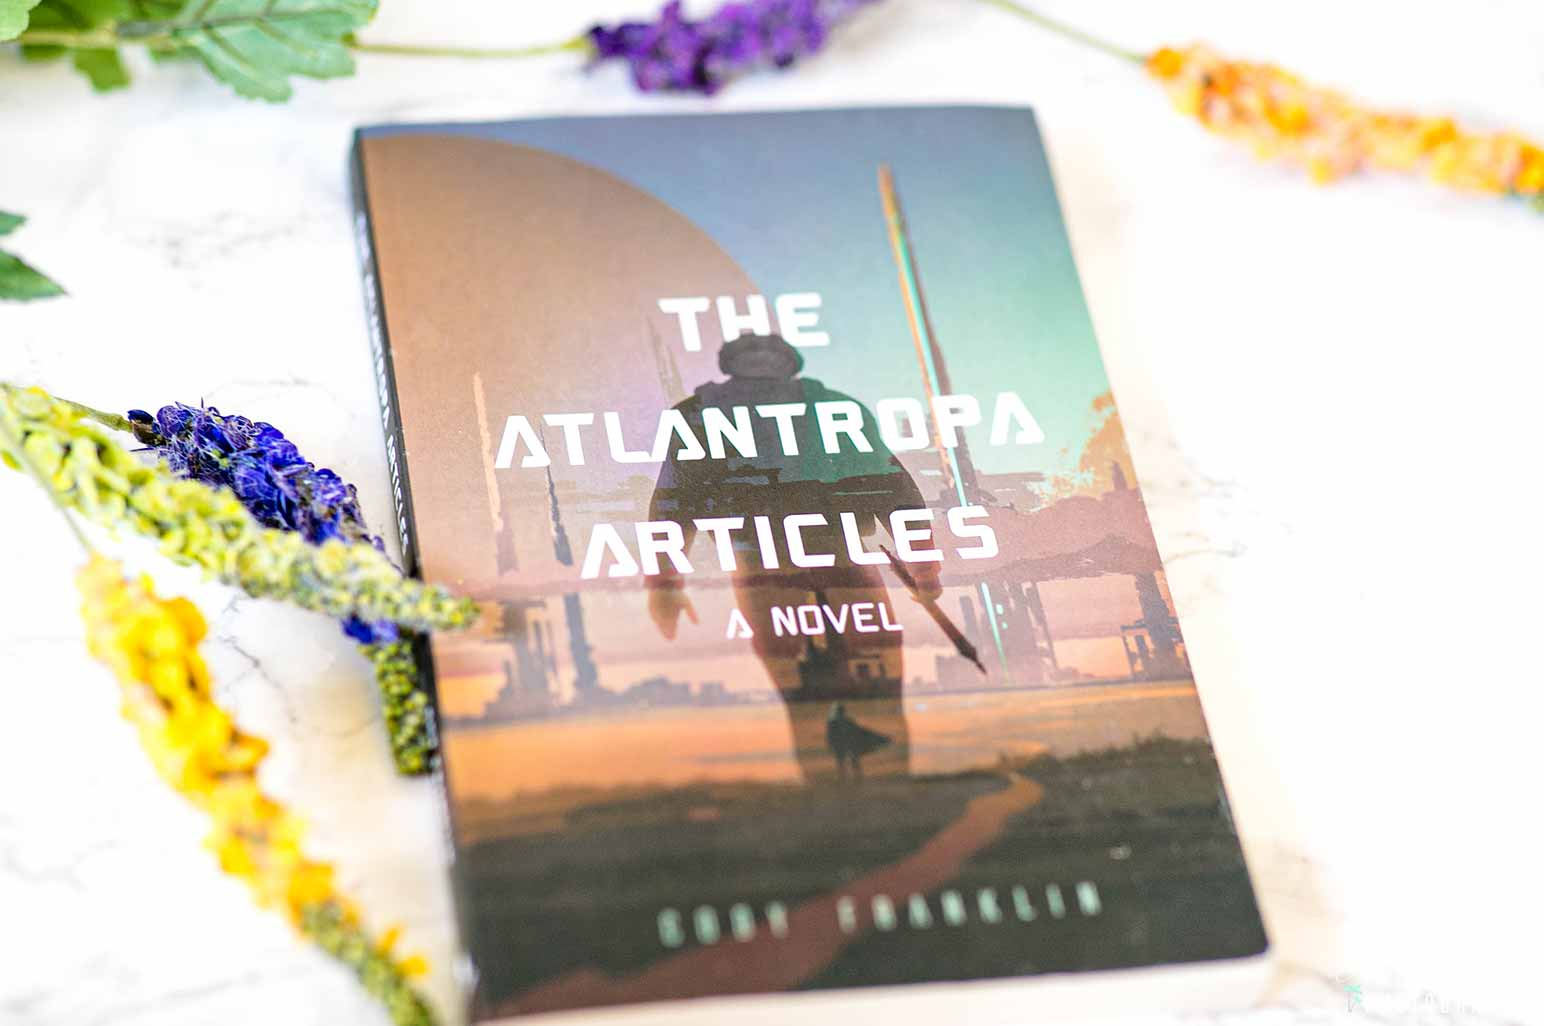 Thee Atlantropa Articles